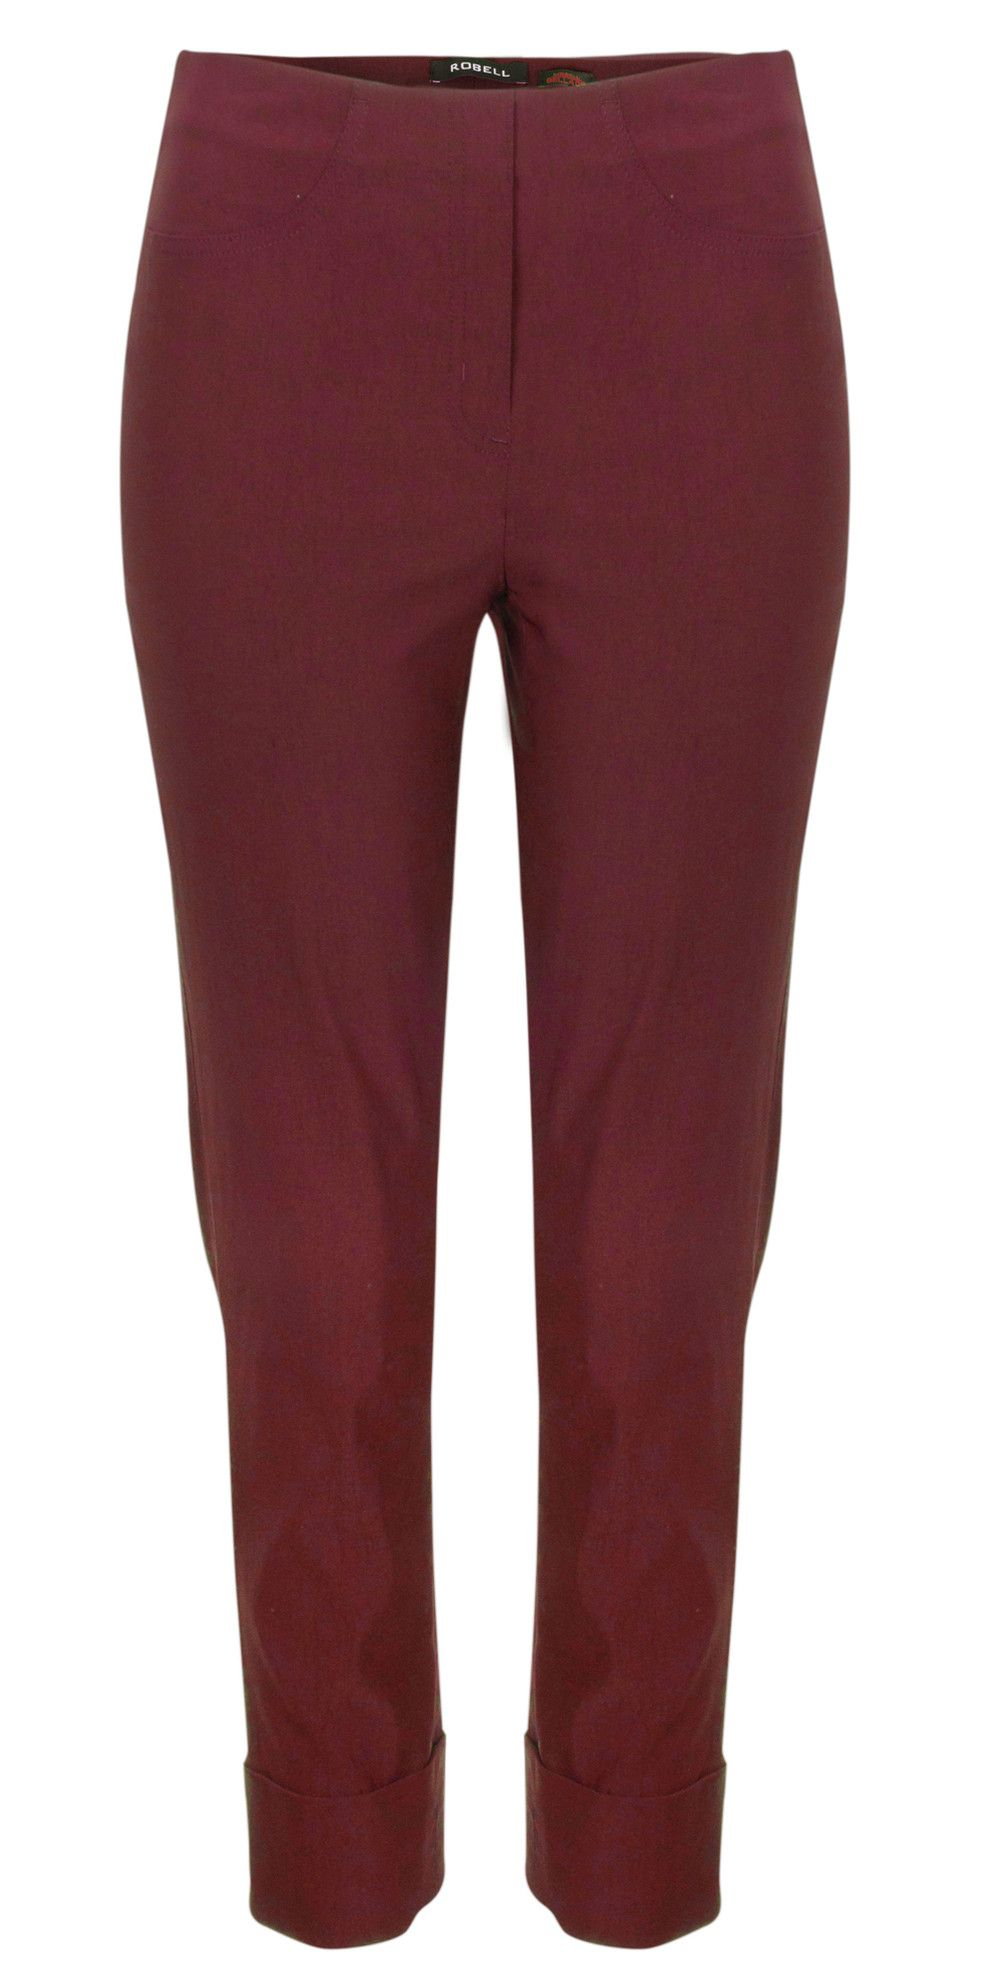 7365543e226 ROBELL TROUSERS BELLA 7 8 CROPPED TROUSER - WINE £50.00